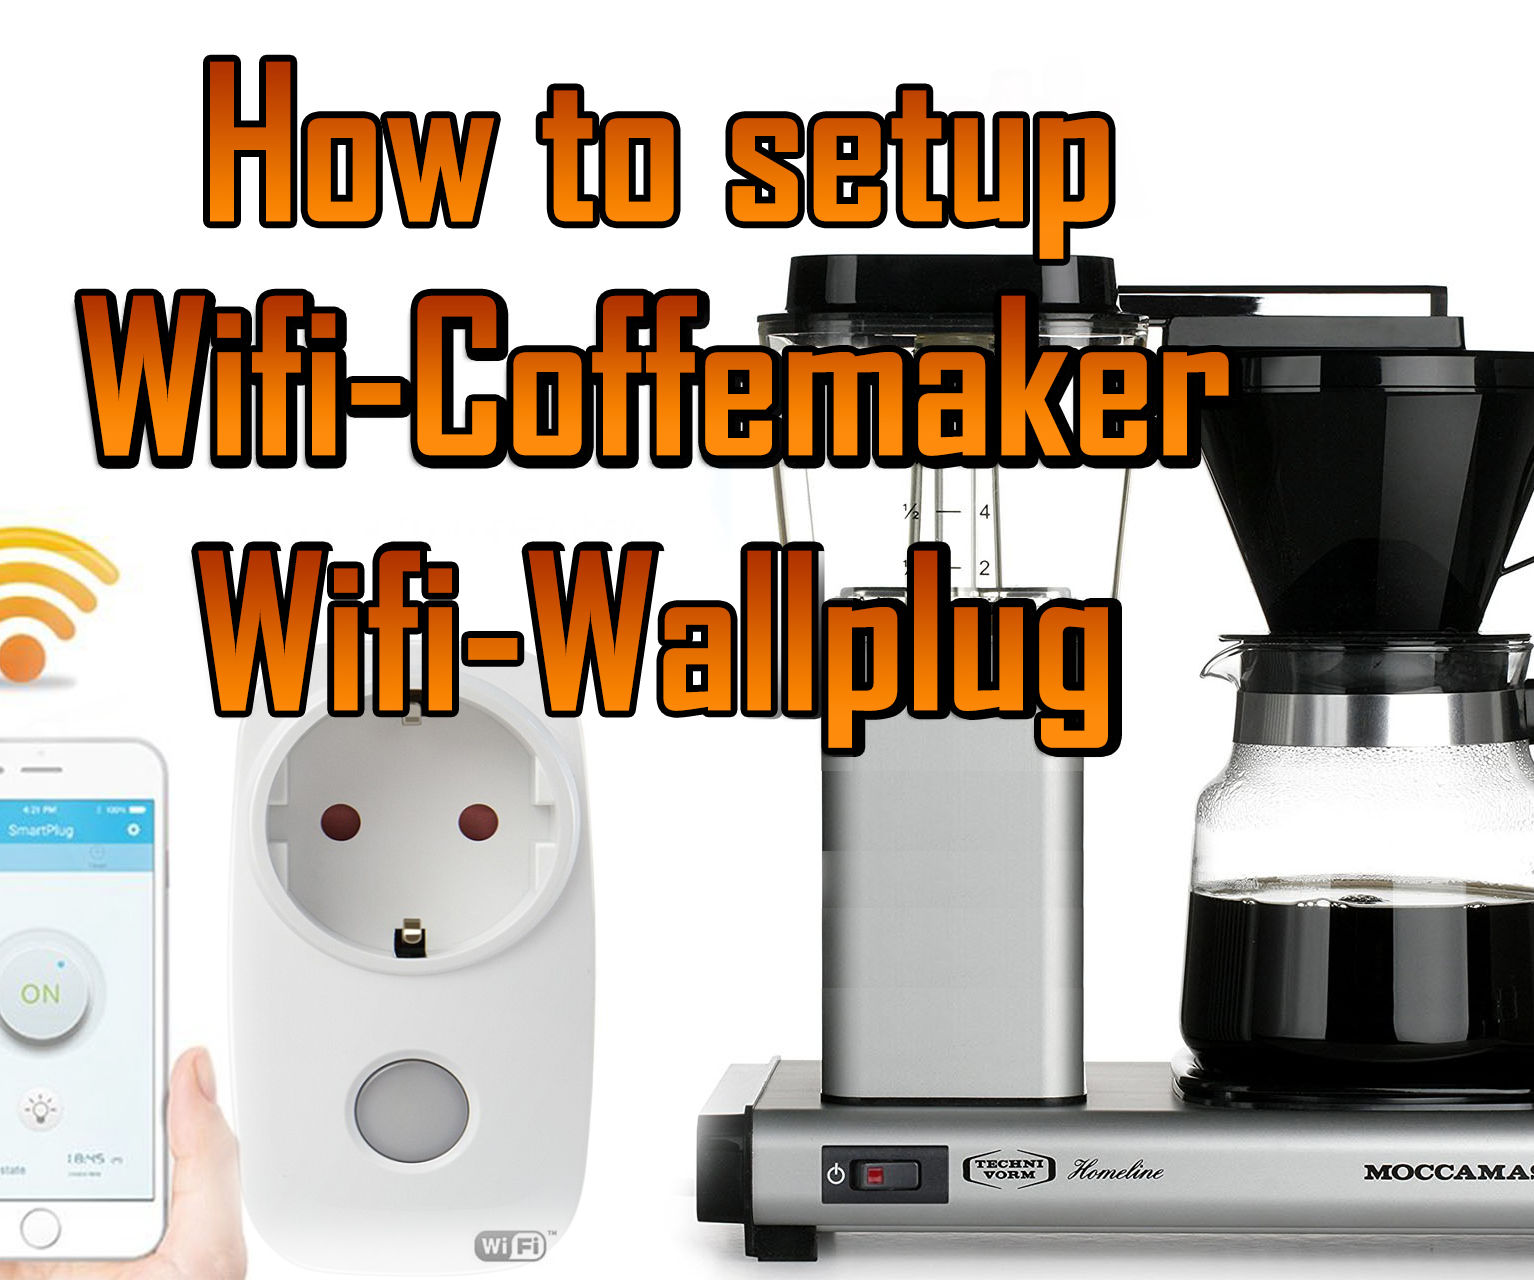 How to Make Coffemaker / Percolator WI-FI Controlled